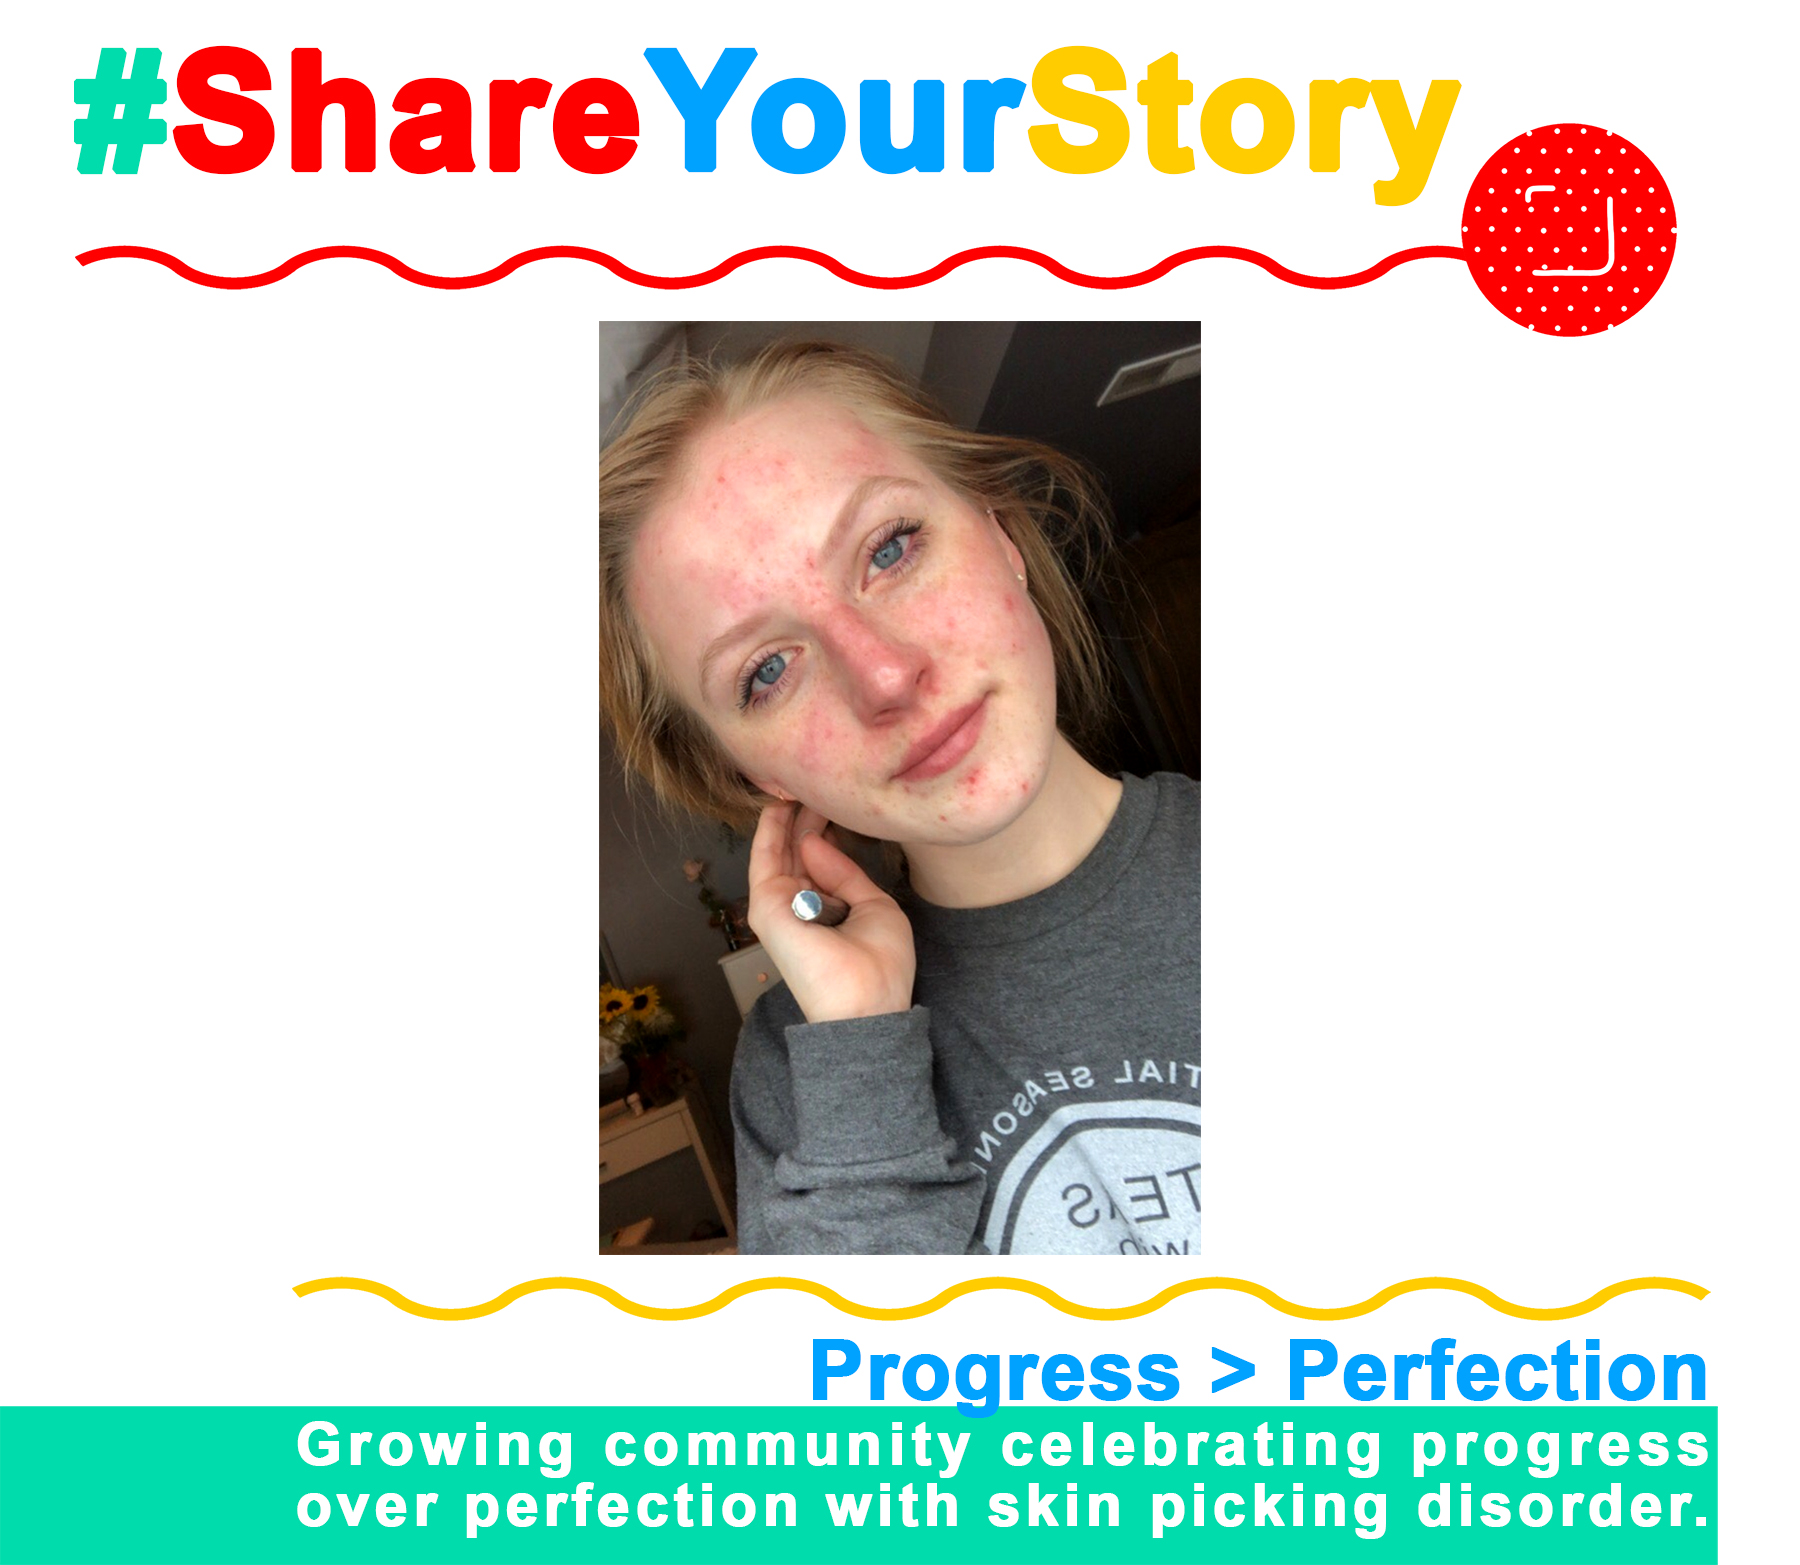 #ShareYourStory: Courtney